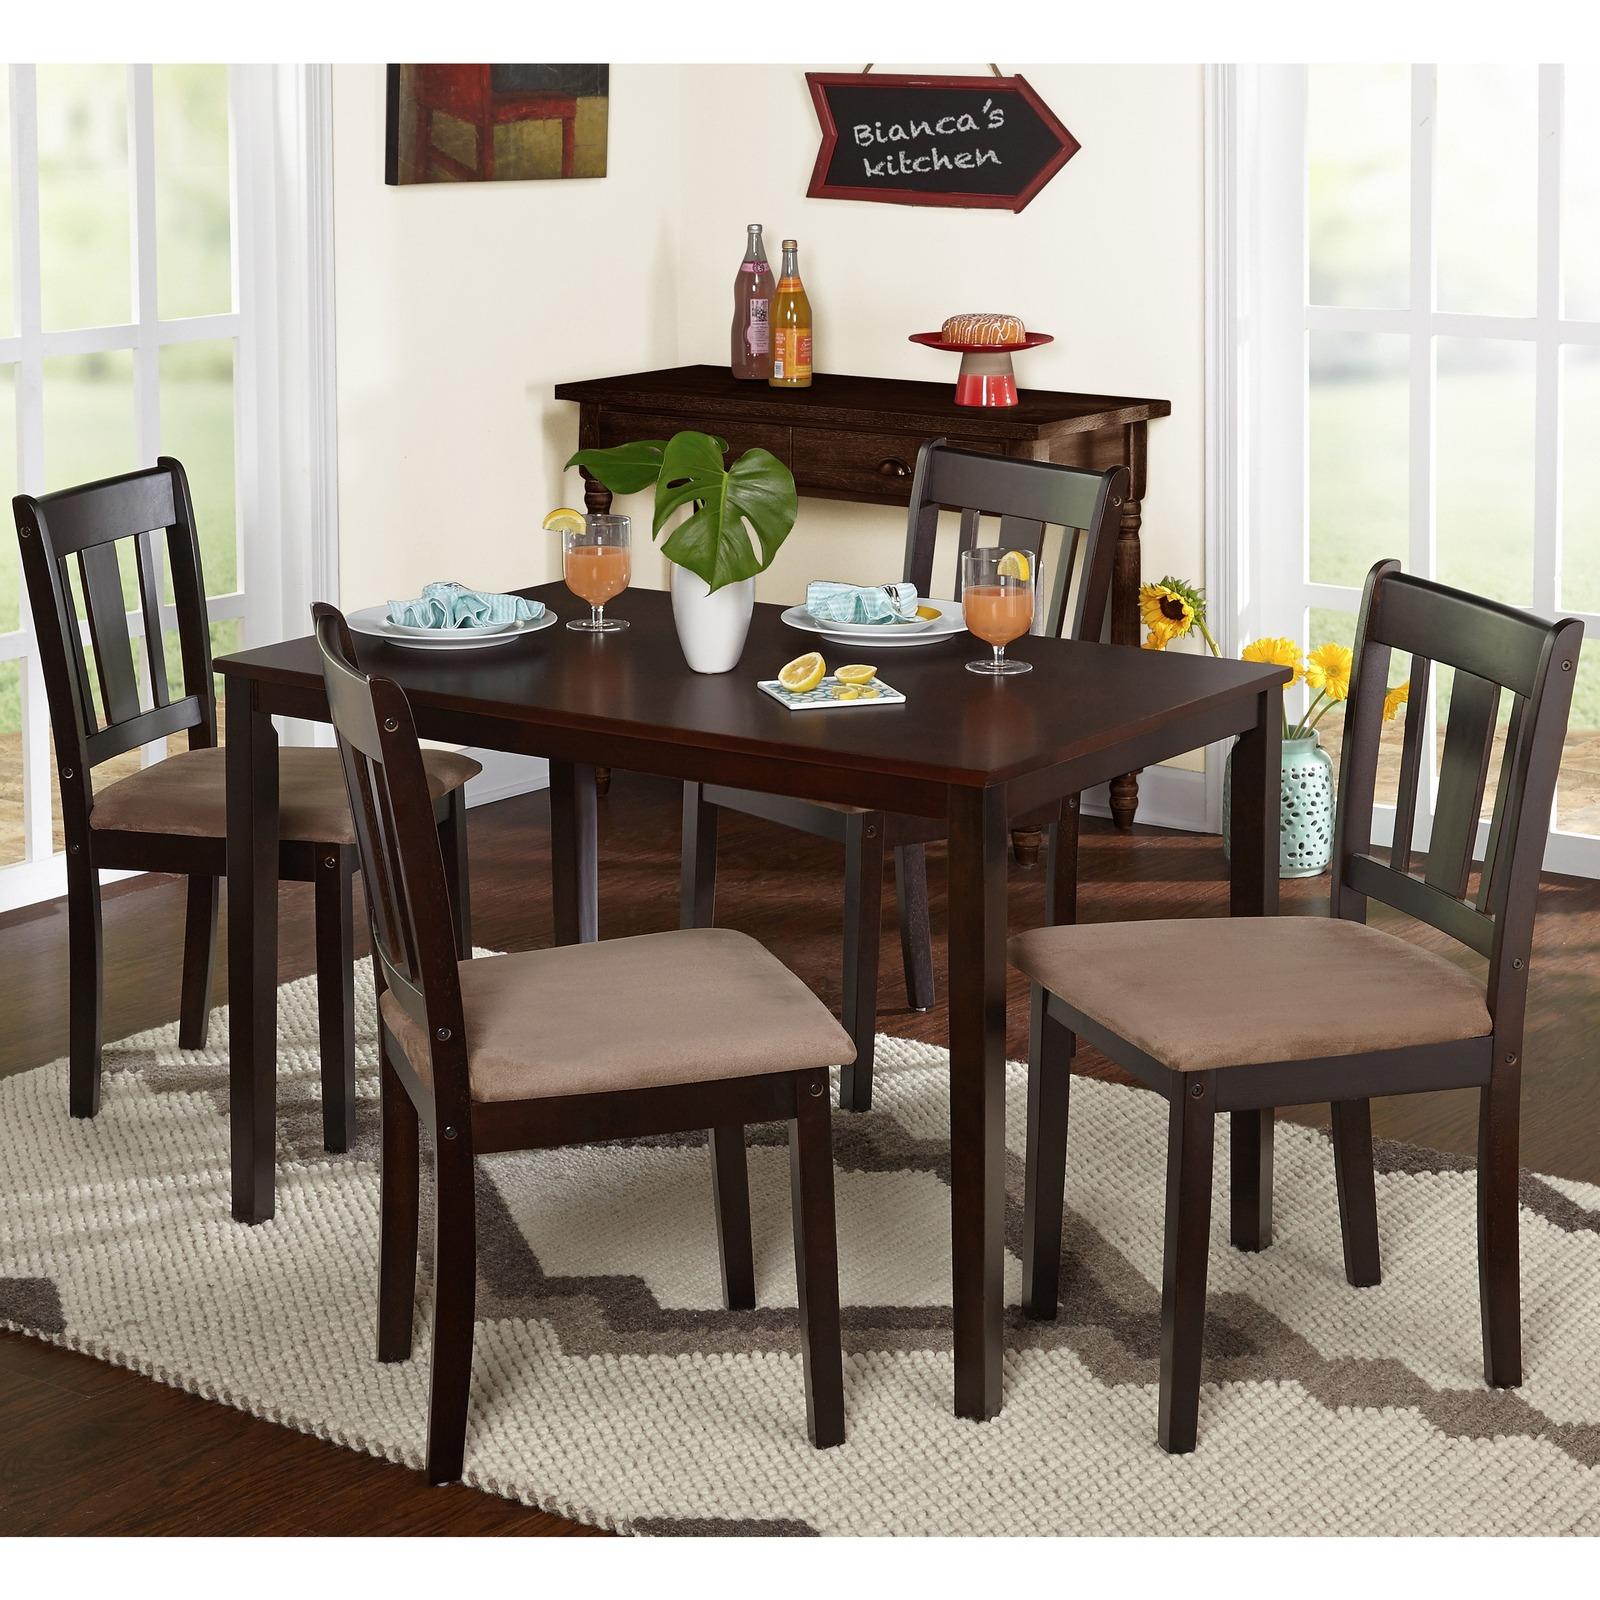 12 piece dining room